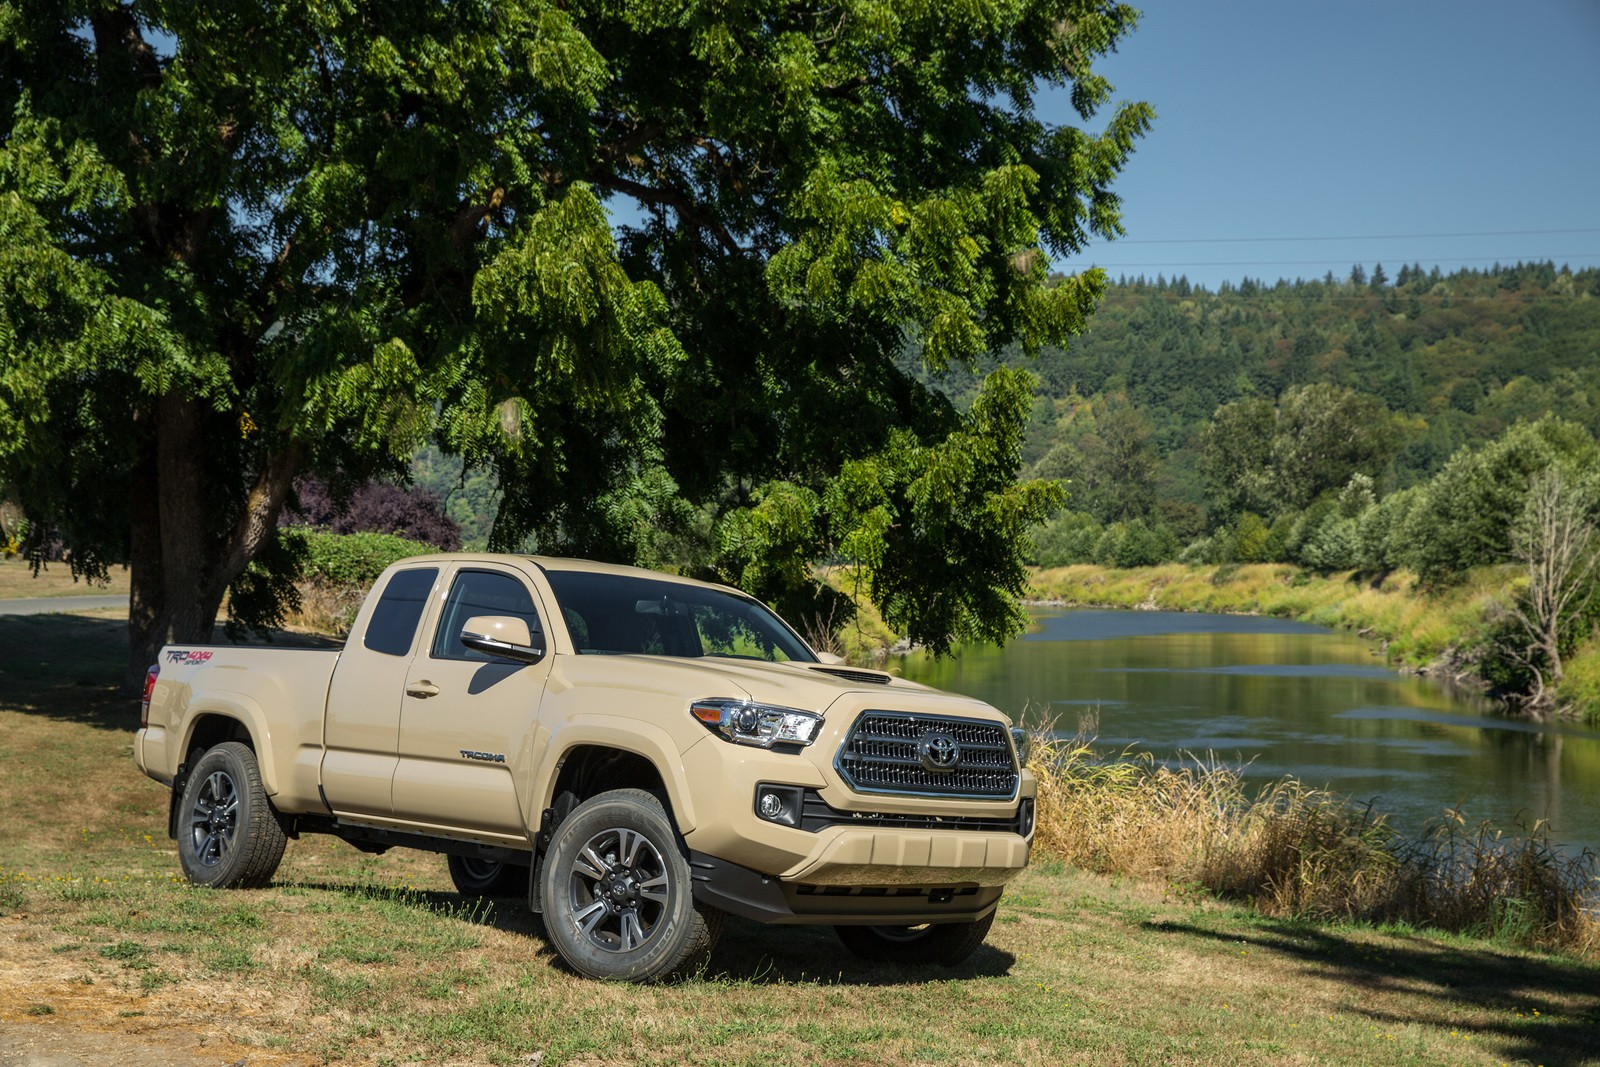 2016 toyota tacoma price revealed prepare 22 300 for the for Newspaper wallpaper for sale